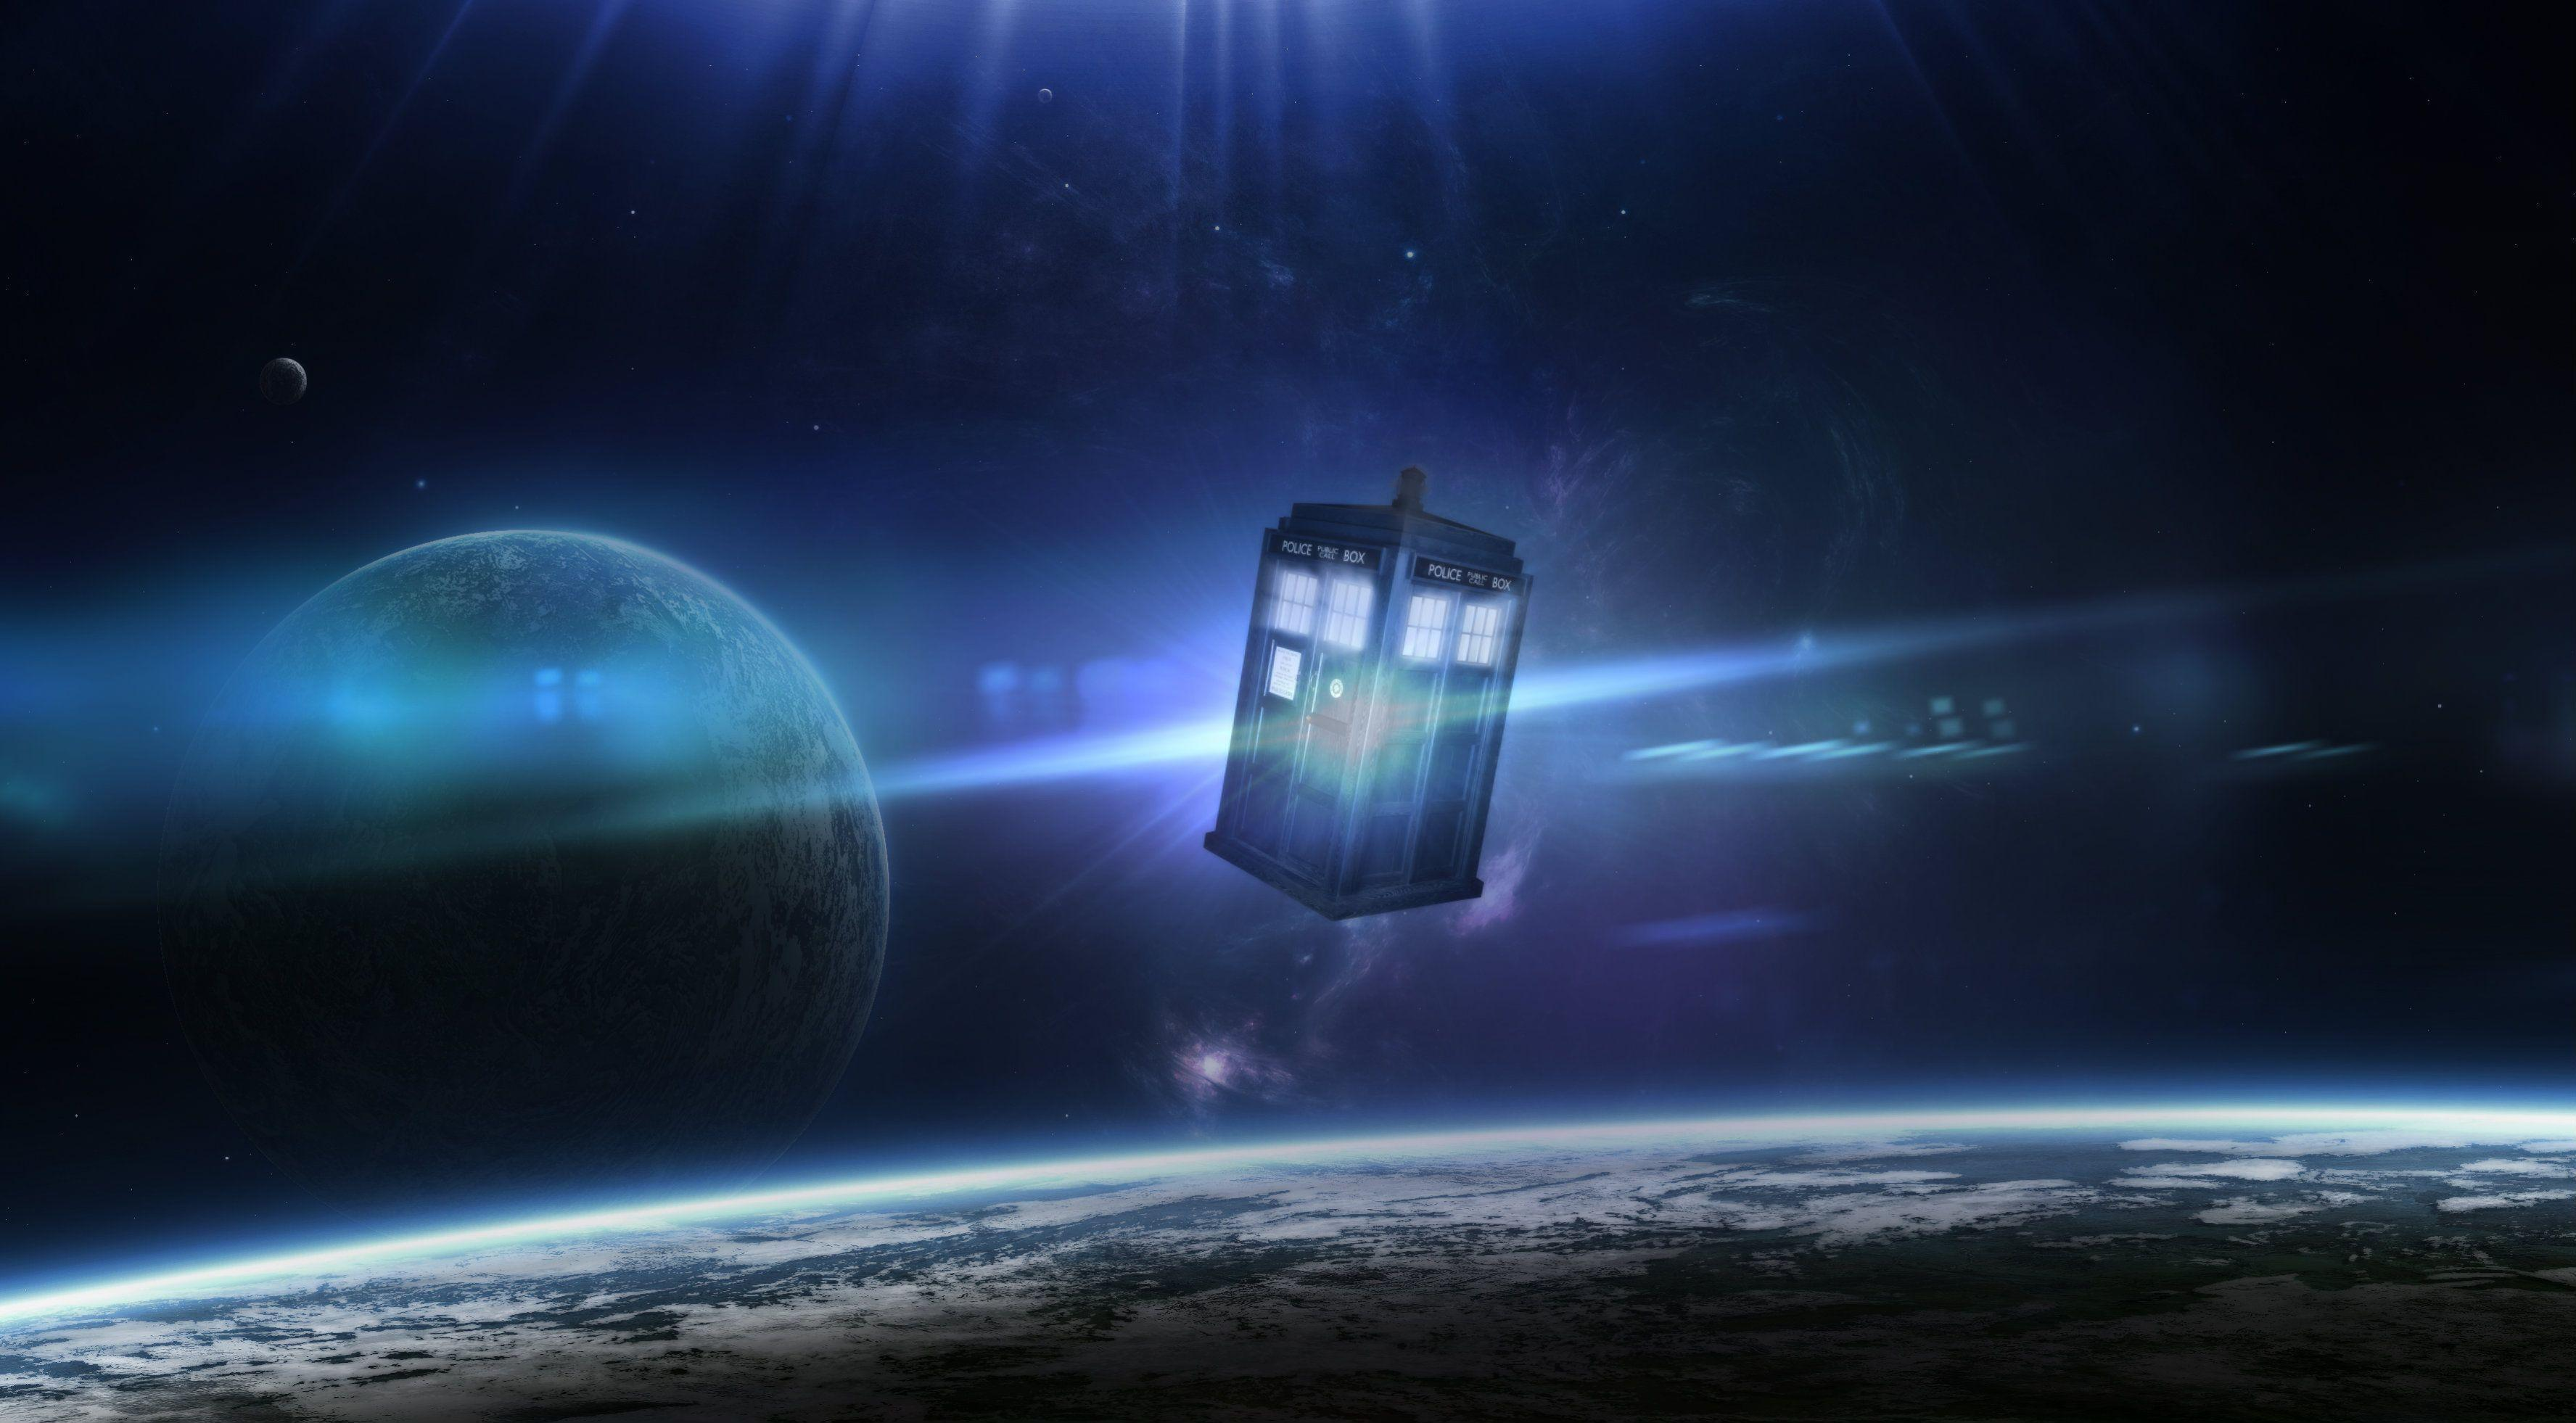 doctor who wallpapers wallpaper cave. Black Bedroom Furniture Sets. Home Design Ideas